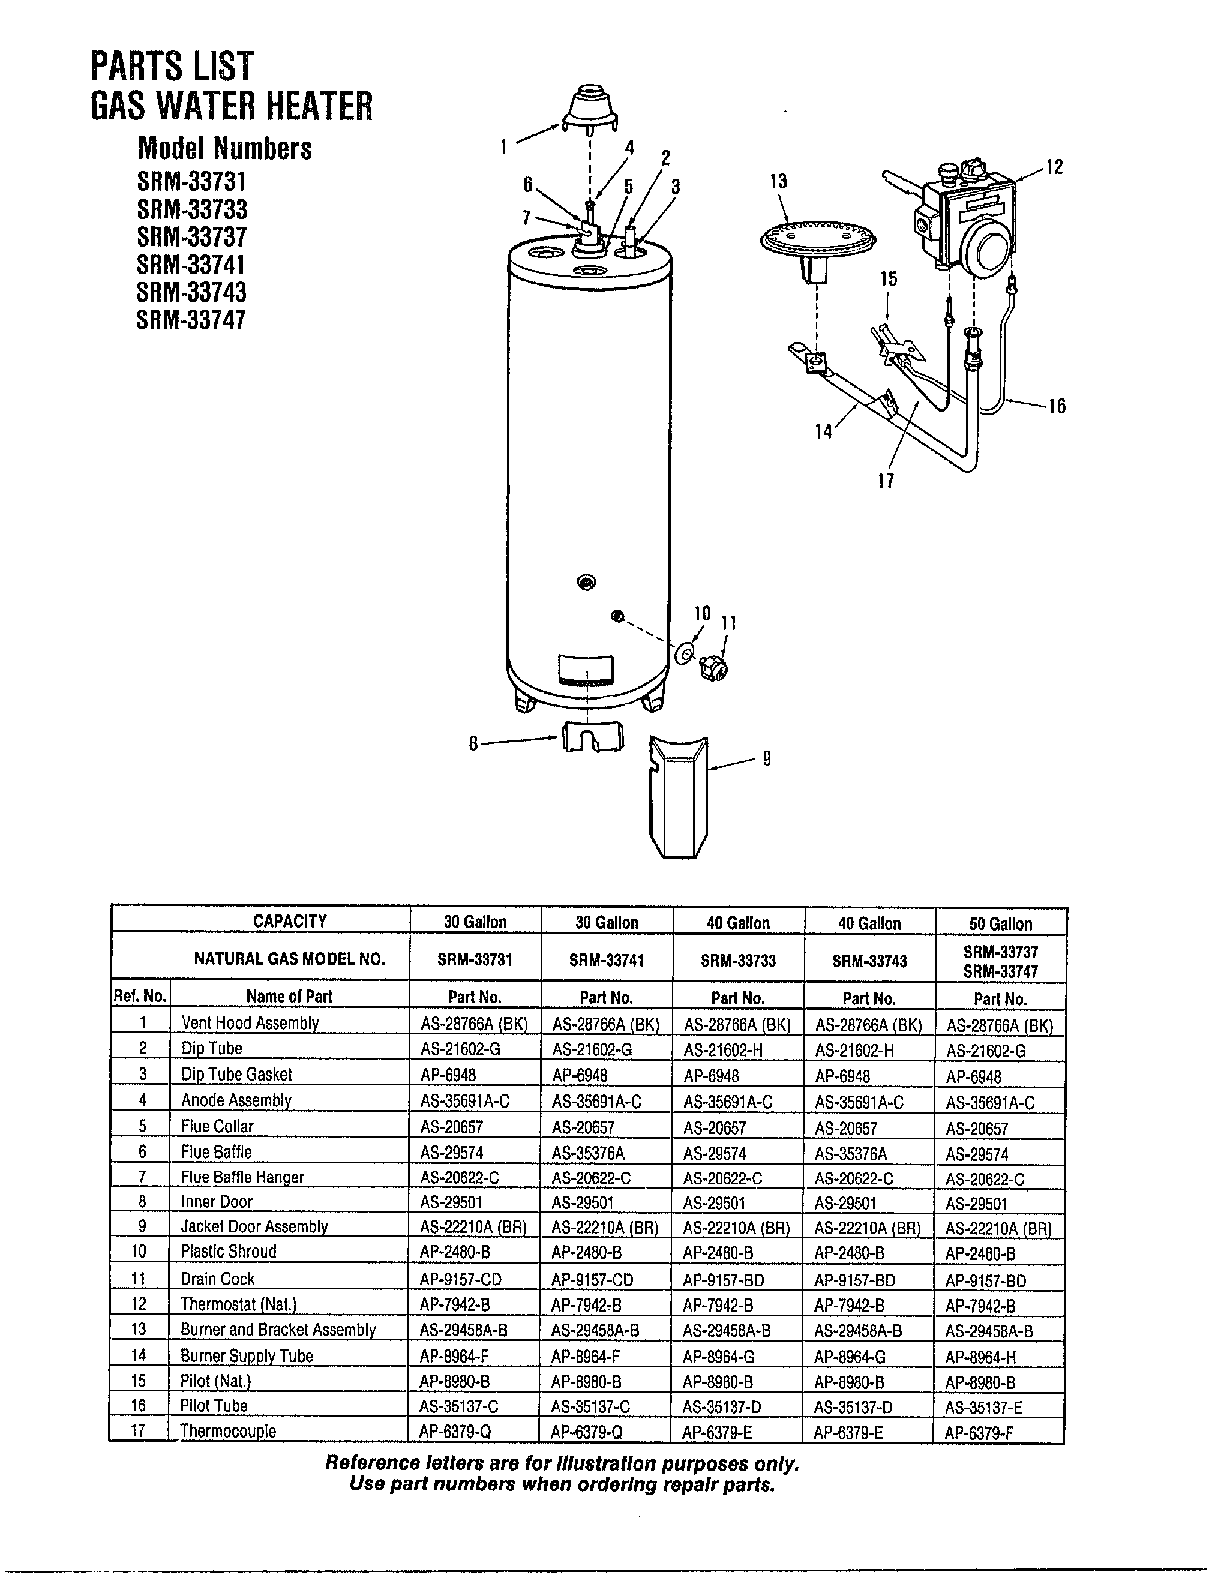 Rheem Water Heater Manual : rheem, water, heater, manual, Rheem, Water, Heater, Owners, Manual